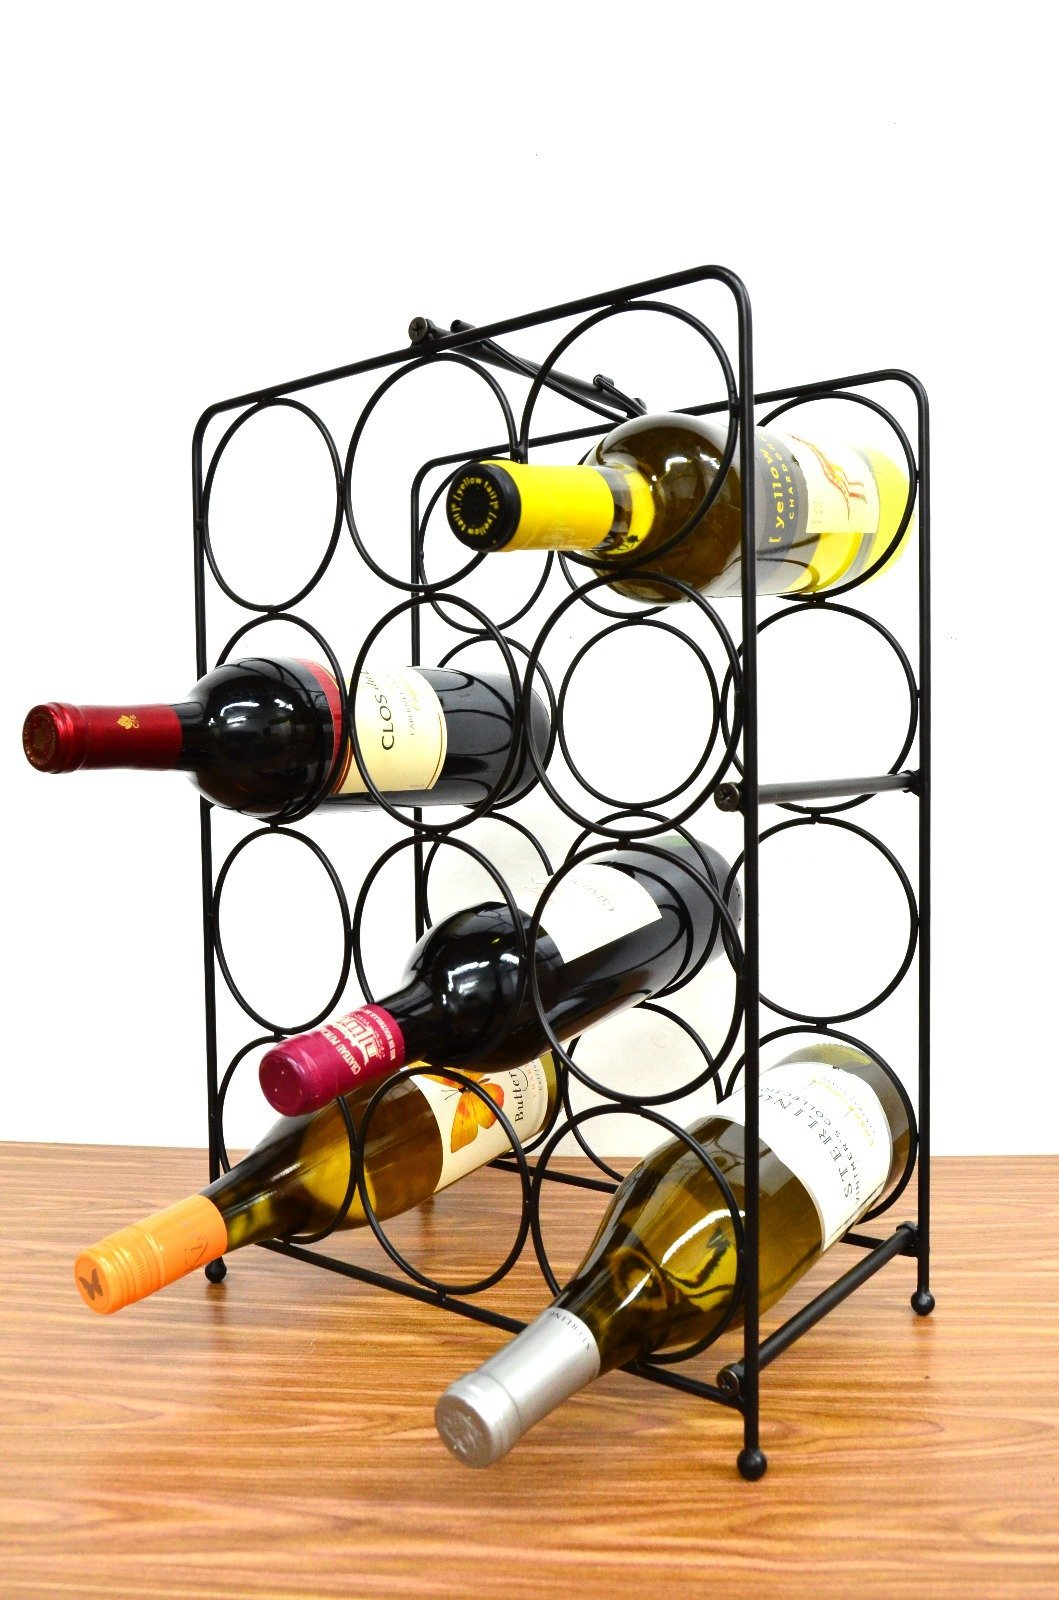 Superiore Livello Napoli 12 Bottle Free Standing Wine Rack, Wine Holder Free Standing Metal Rack for Floor Modern Scroll Art Design Wine Bottle Storage Rack Perfect Floor Standing Wine Storage Rack